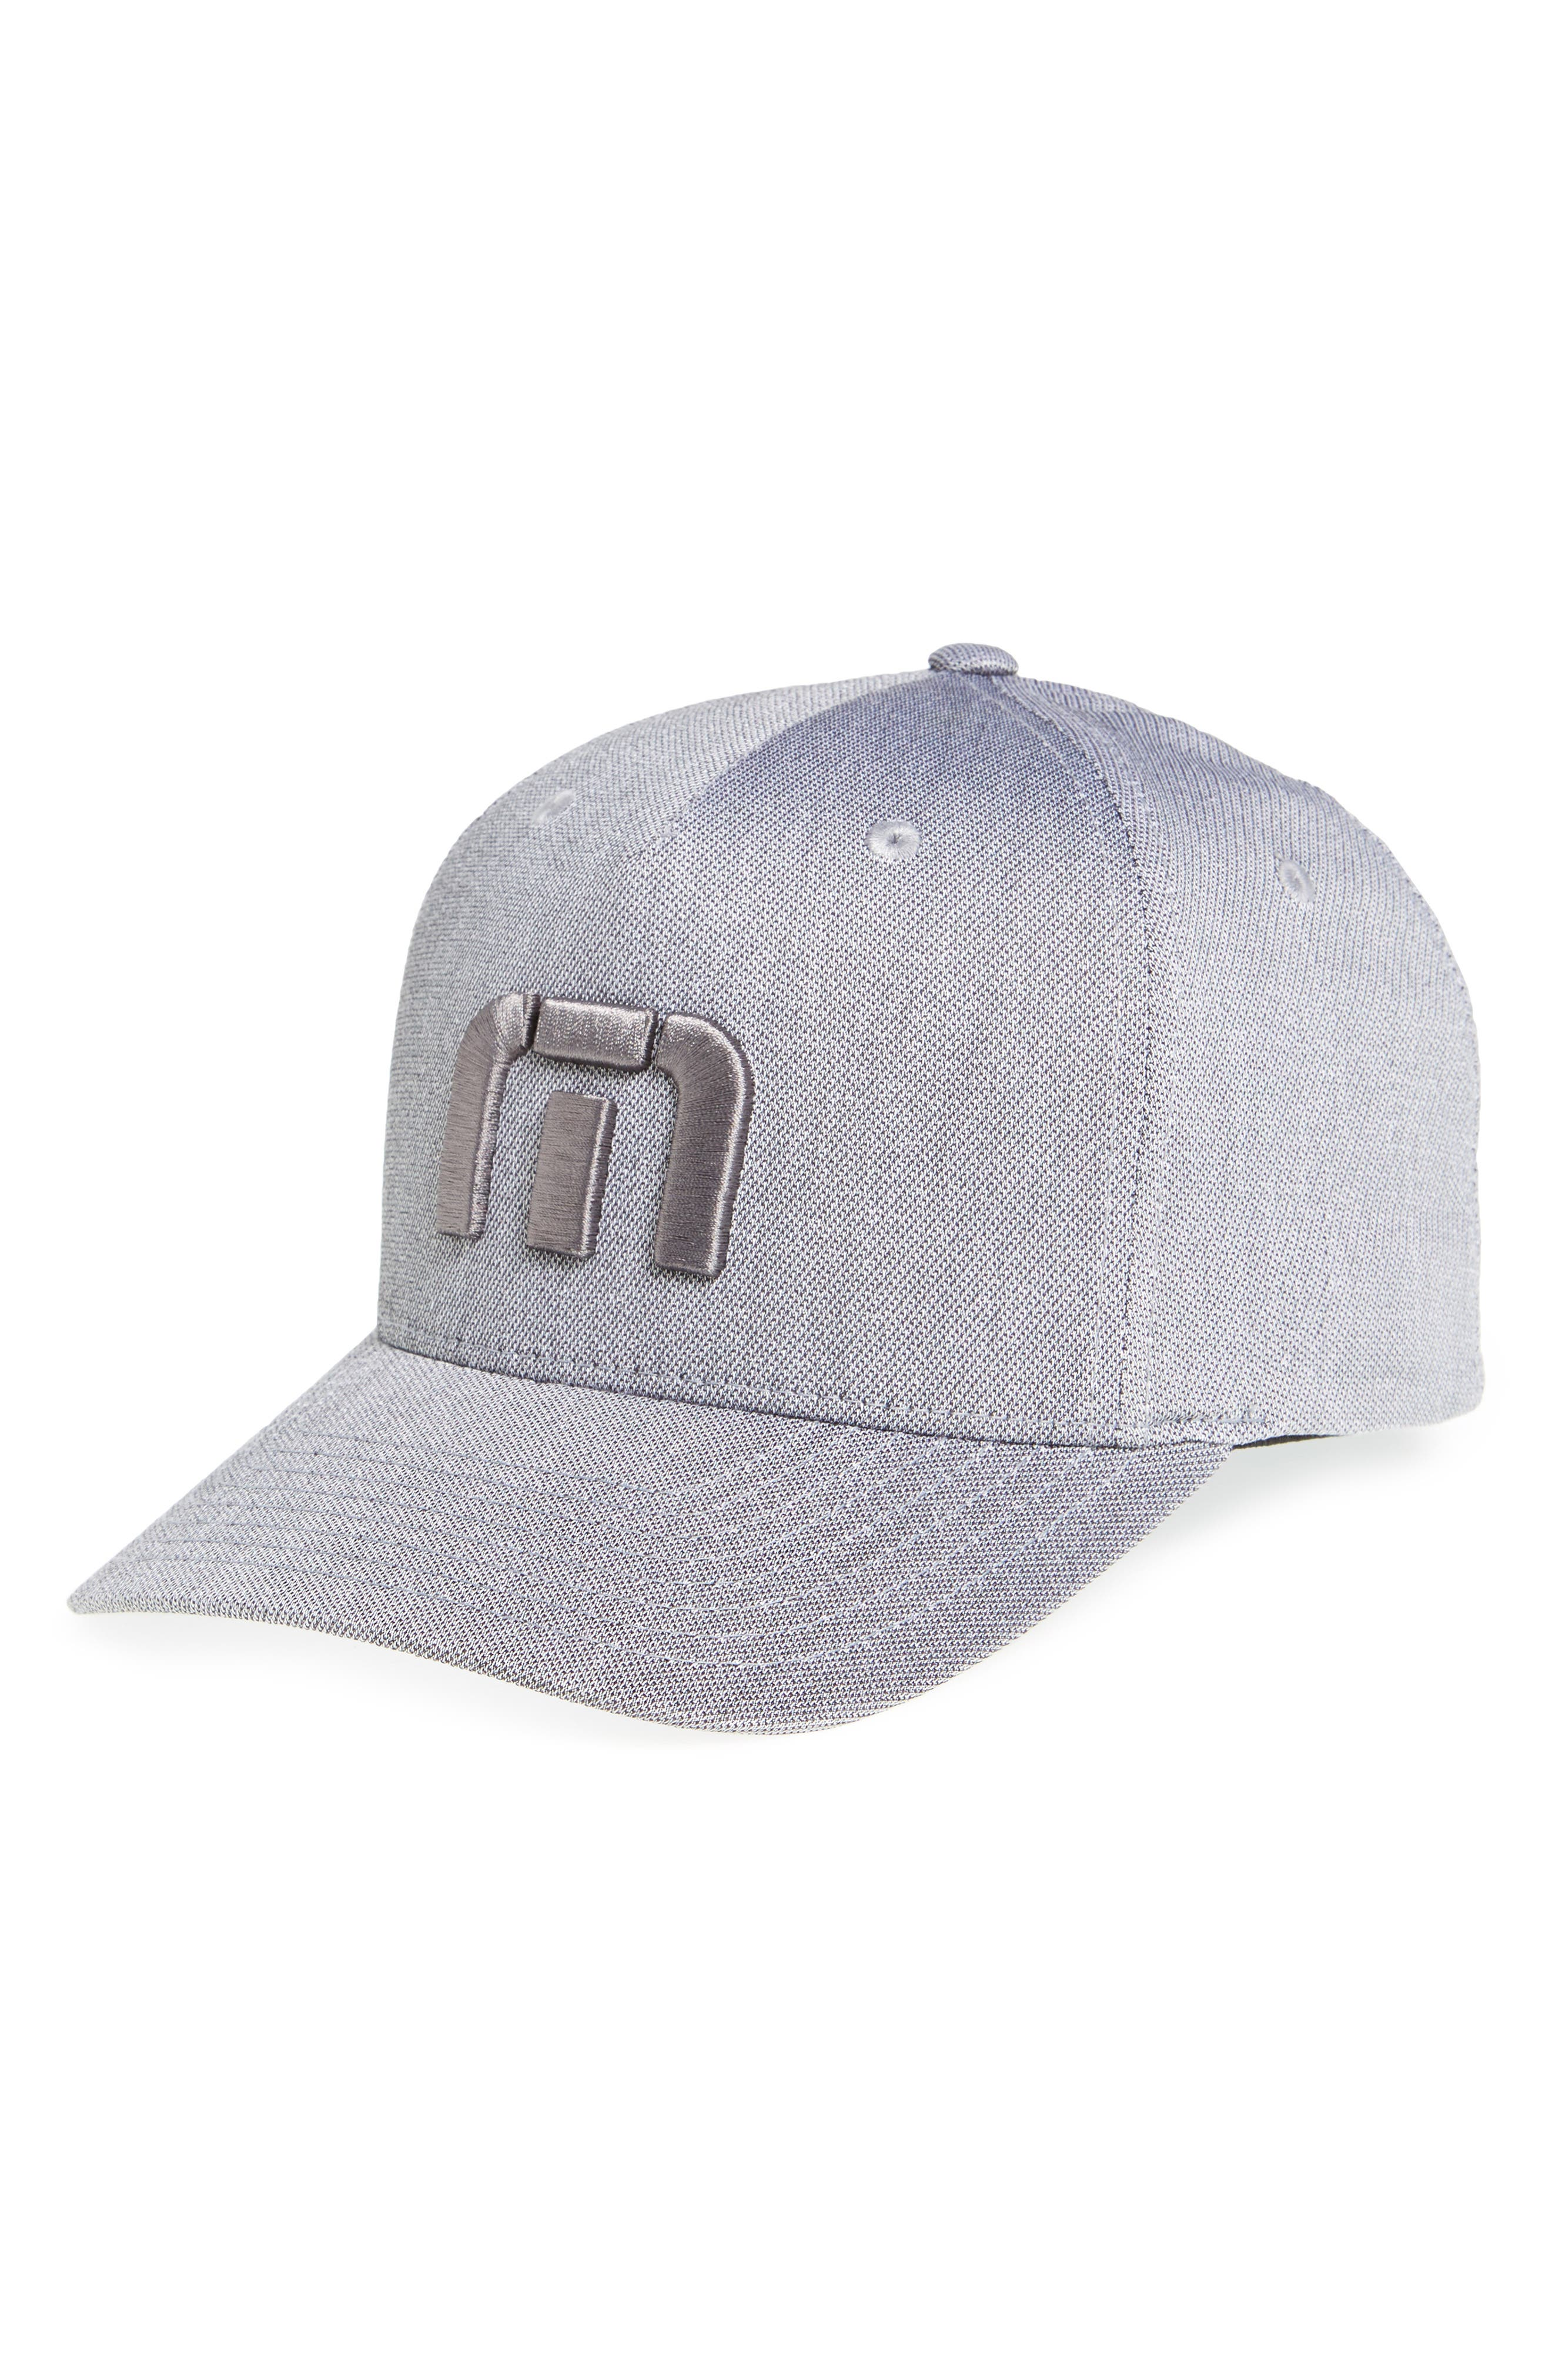 Travis Mathew Van Dyke Flex Fit Baseball Cap